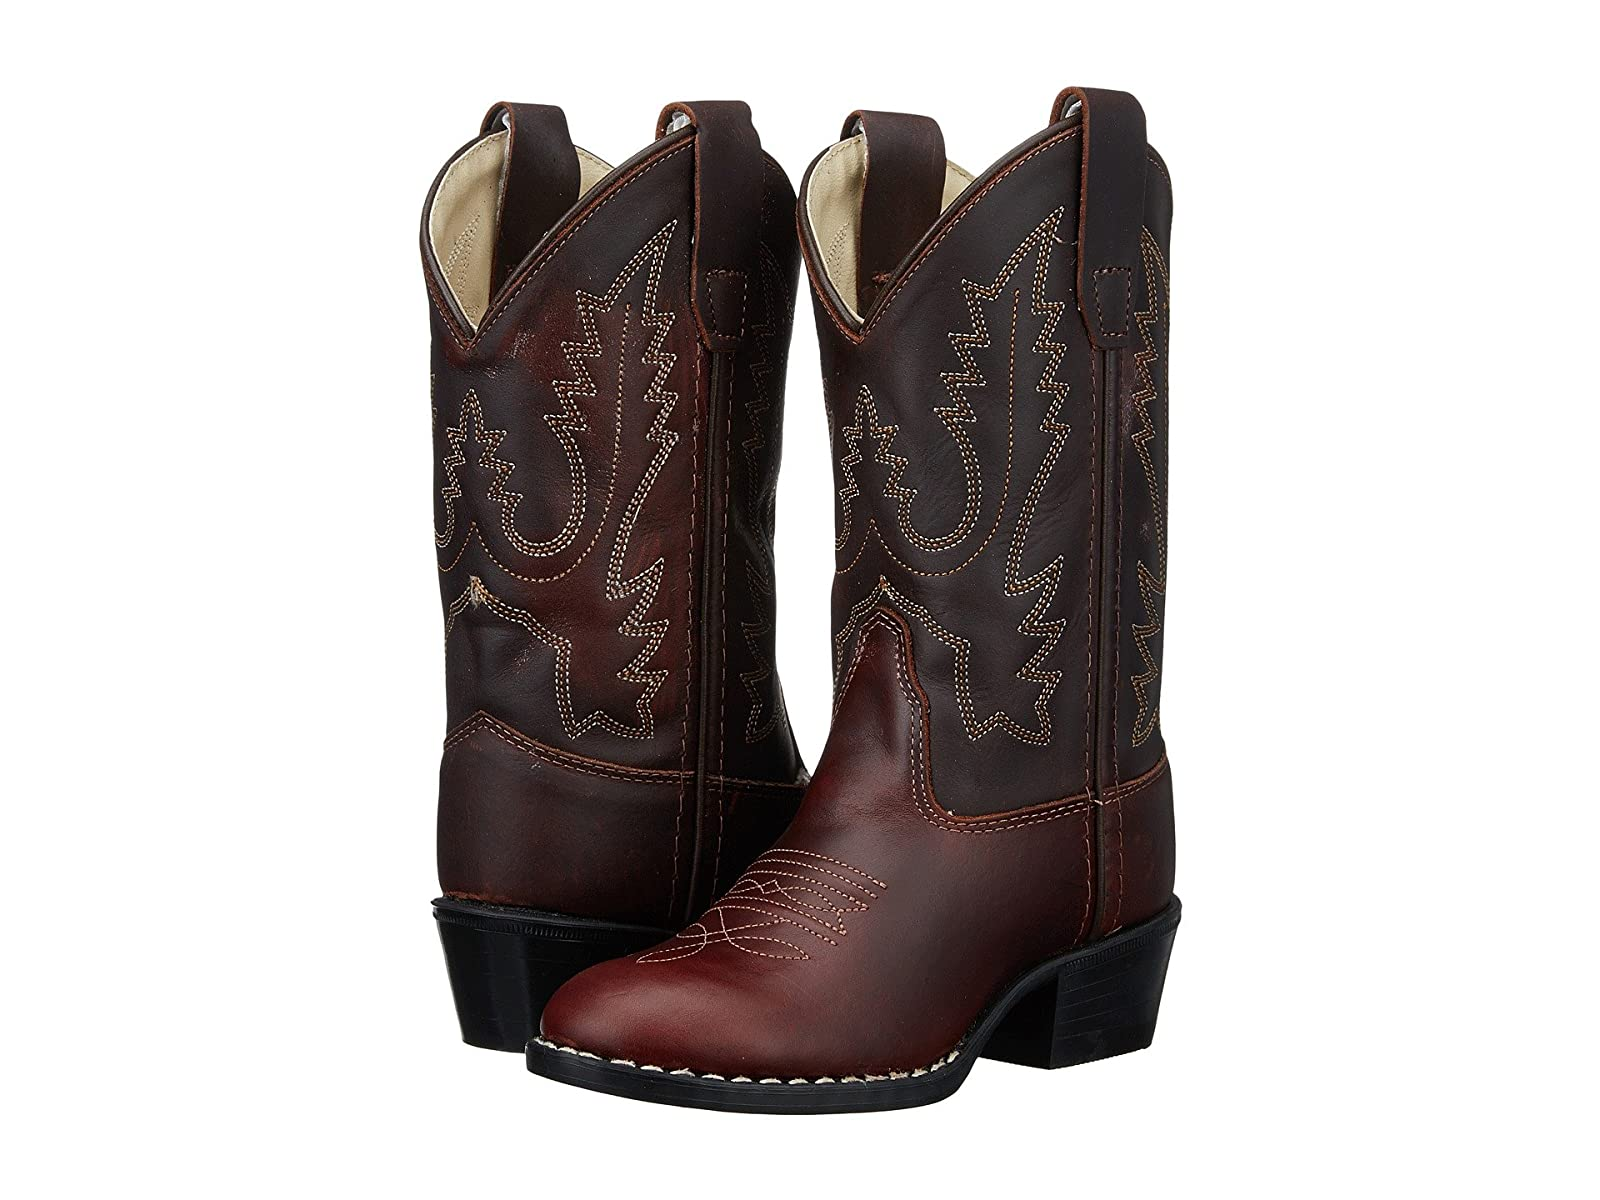 Old West Kids Boots Round Toe Western Boot (Toddler/Little Kid)Economical and quality shoes